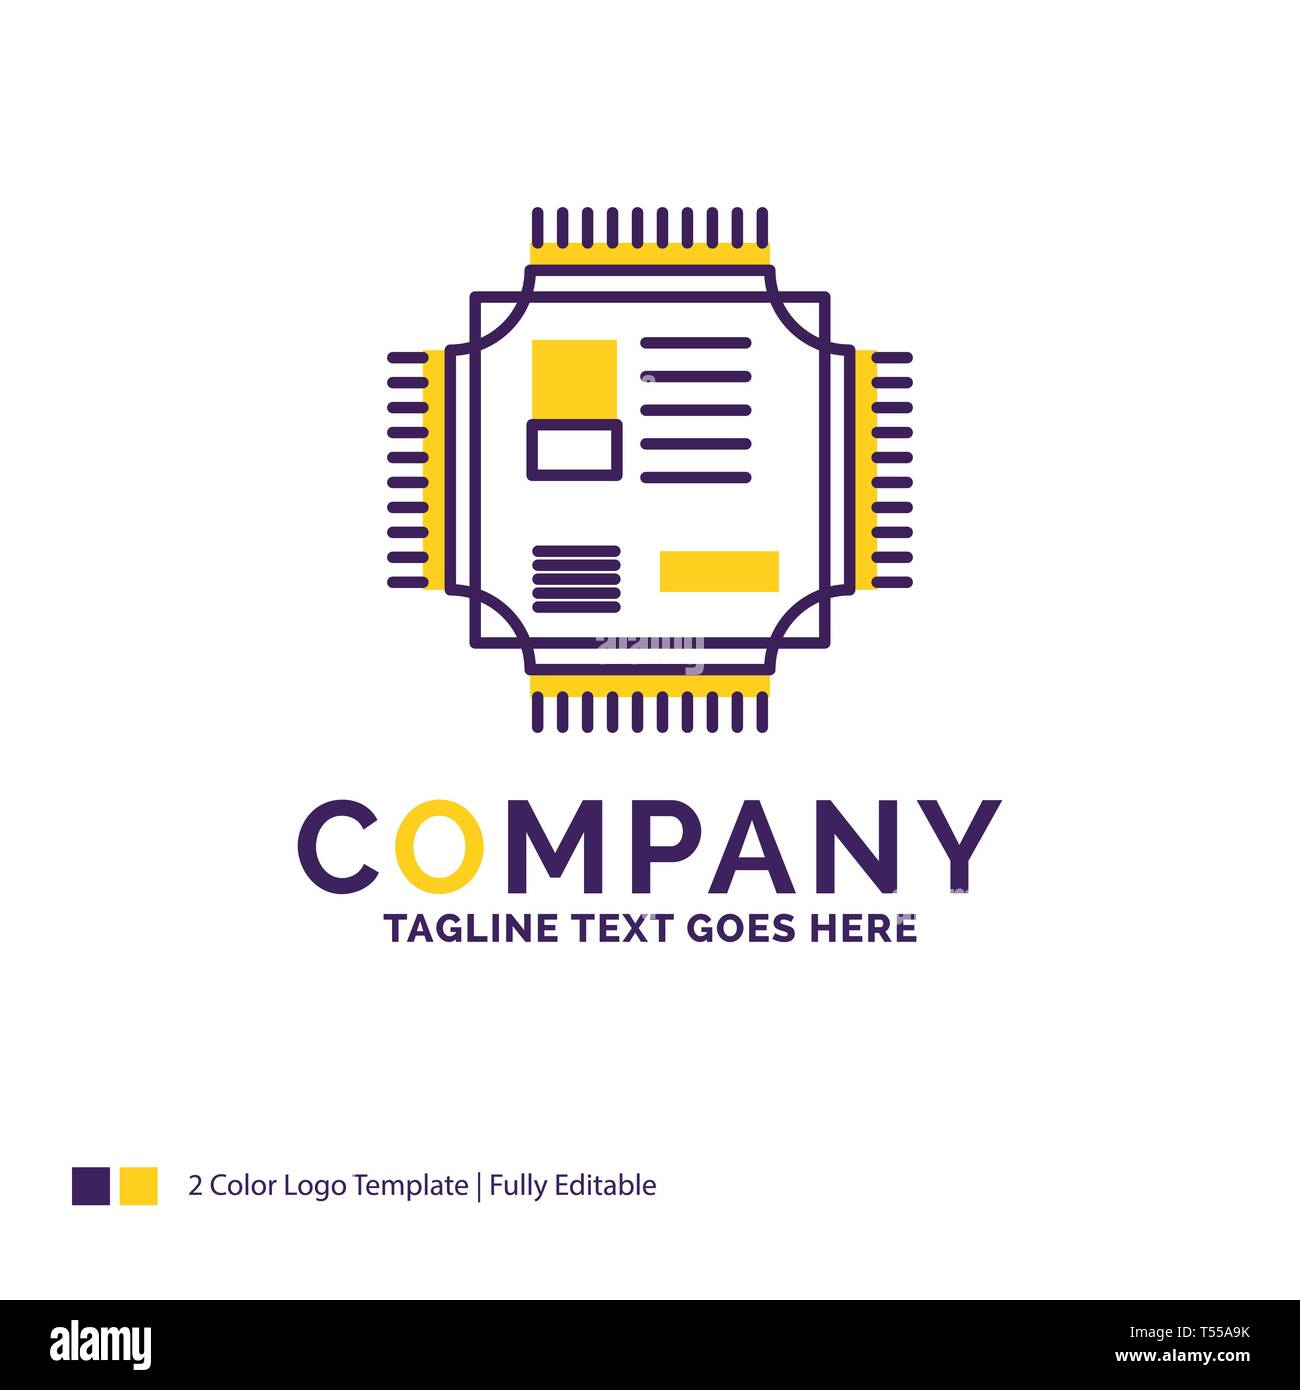 Company Name Logo Design For Chip, cpu, microchip, processor